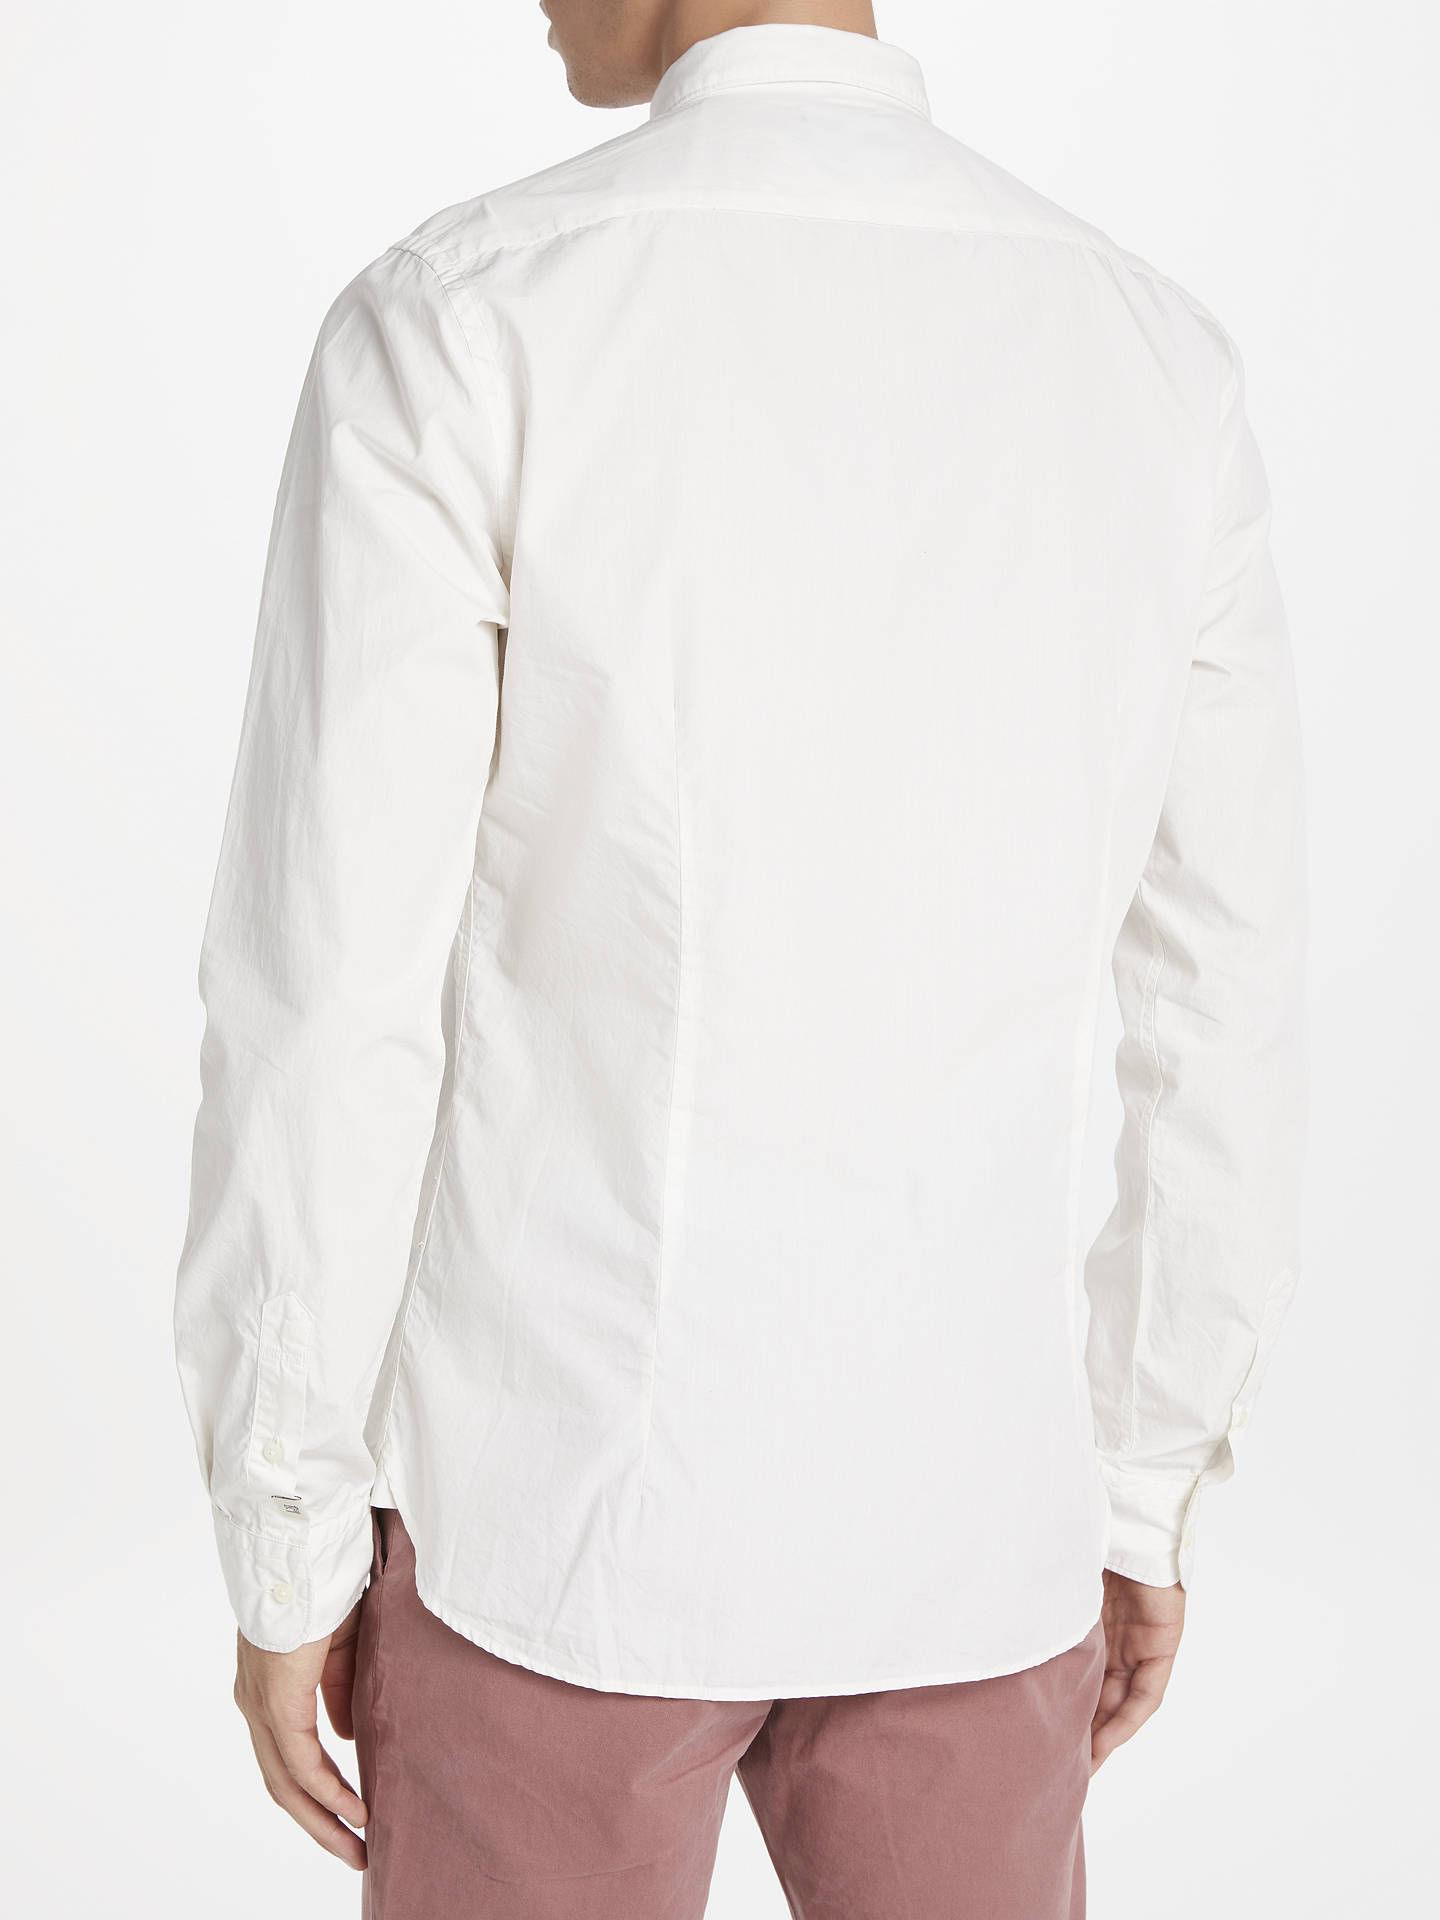 Buy Scotch & Soda Long Sleeve Poplin Shirt, White, S Online at johnlewis.com